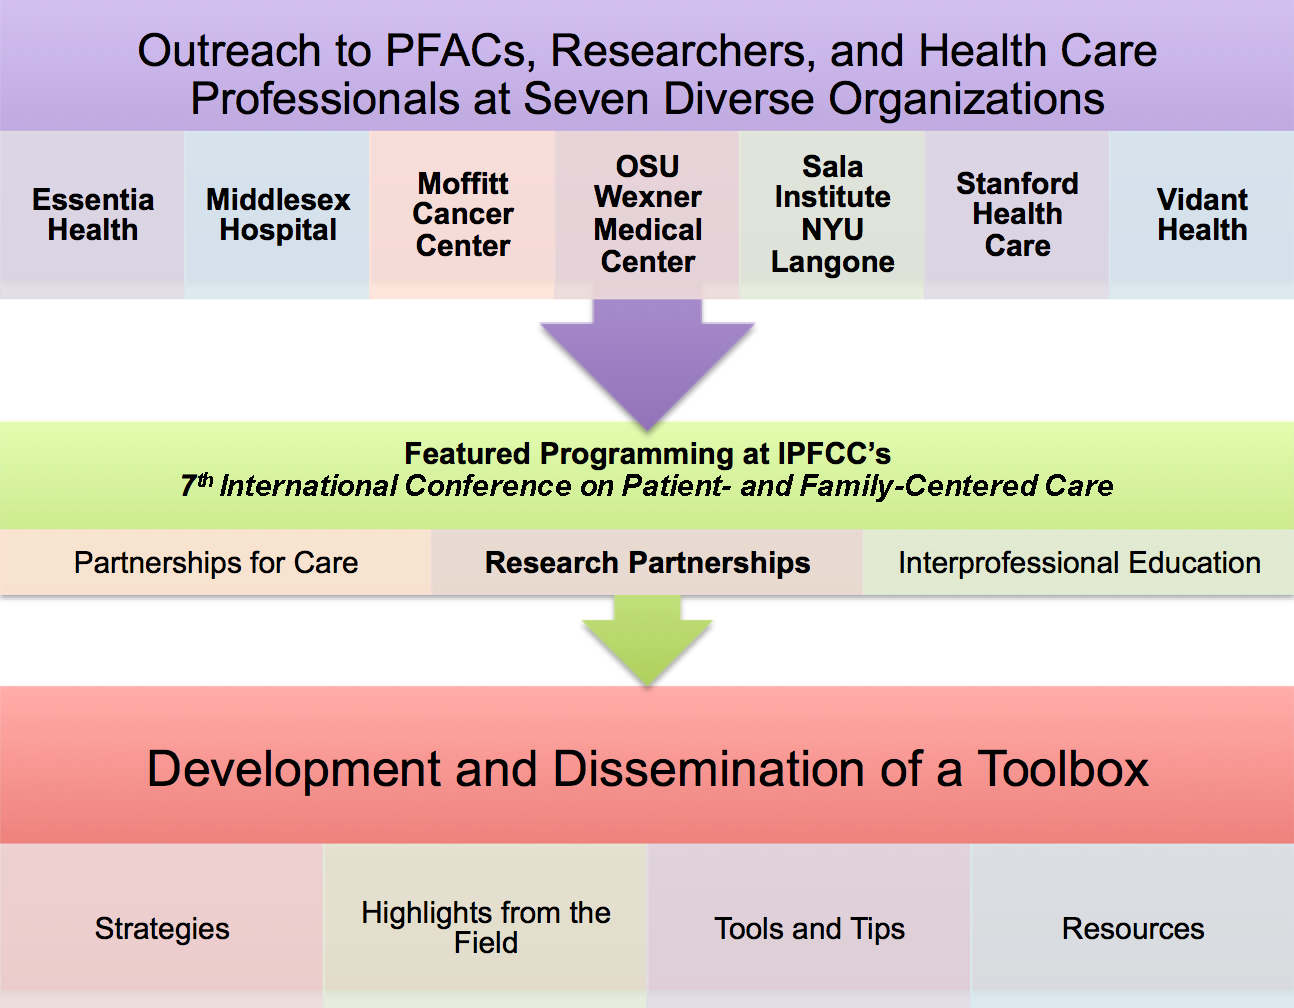 Development and Dissemination of a Toolbox